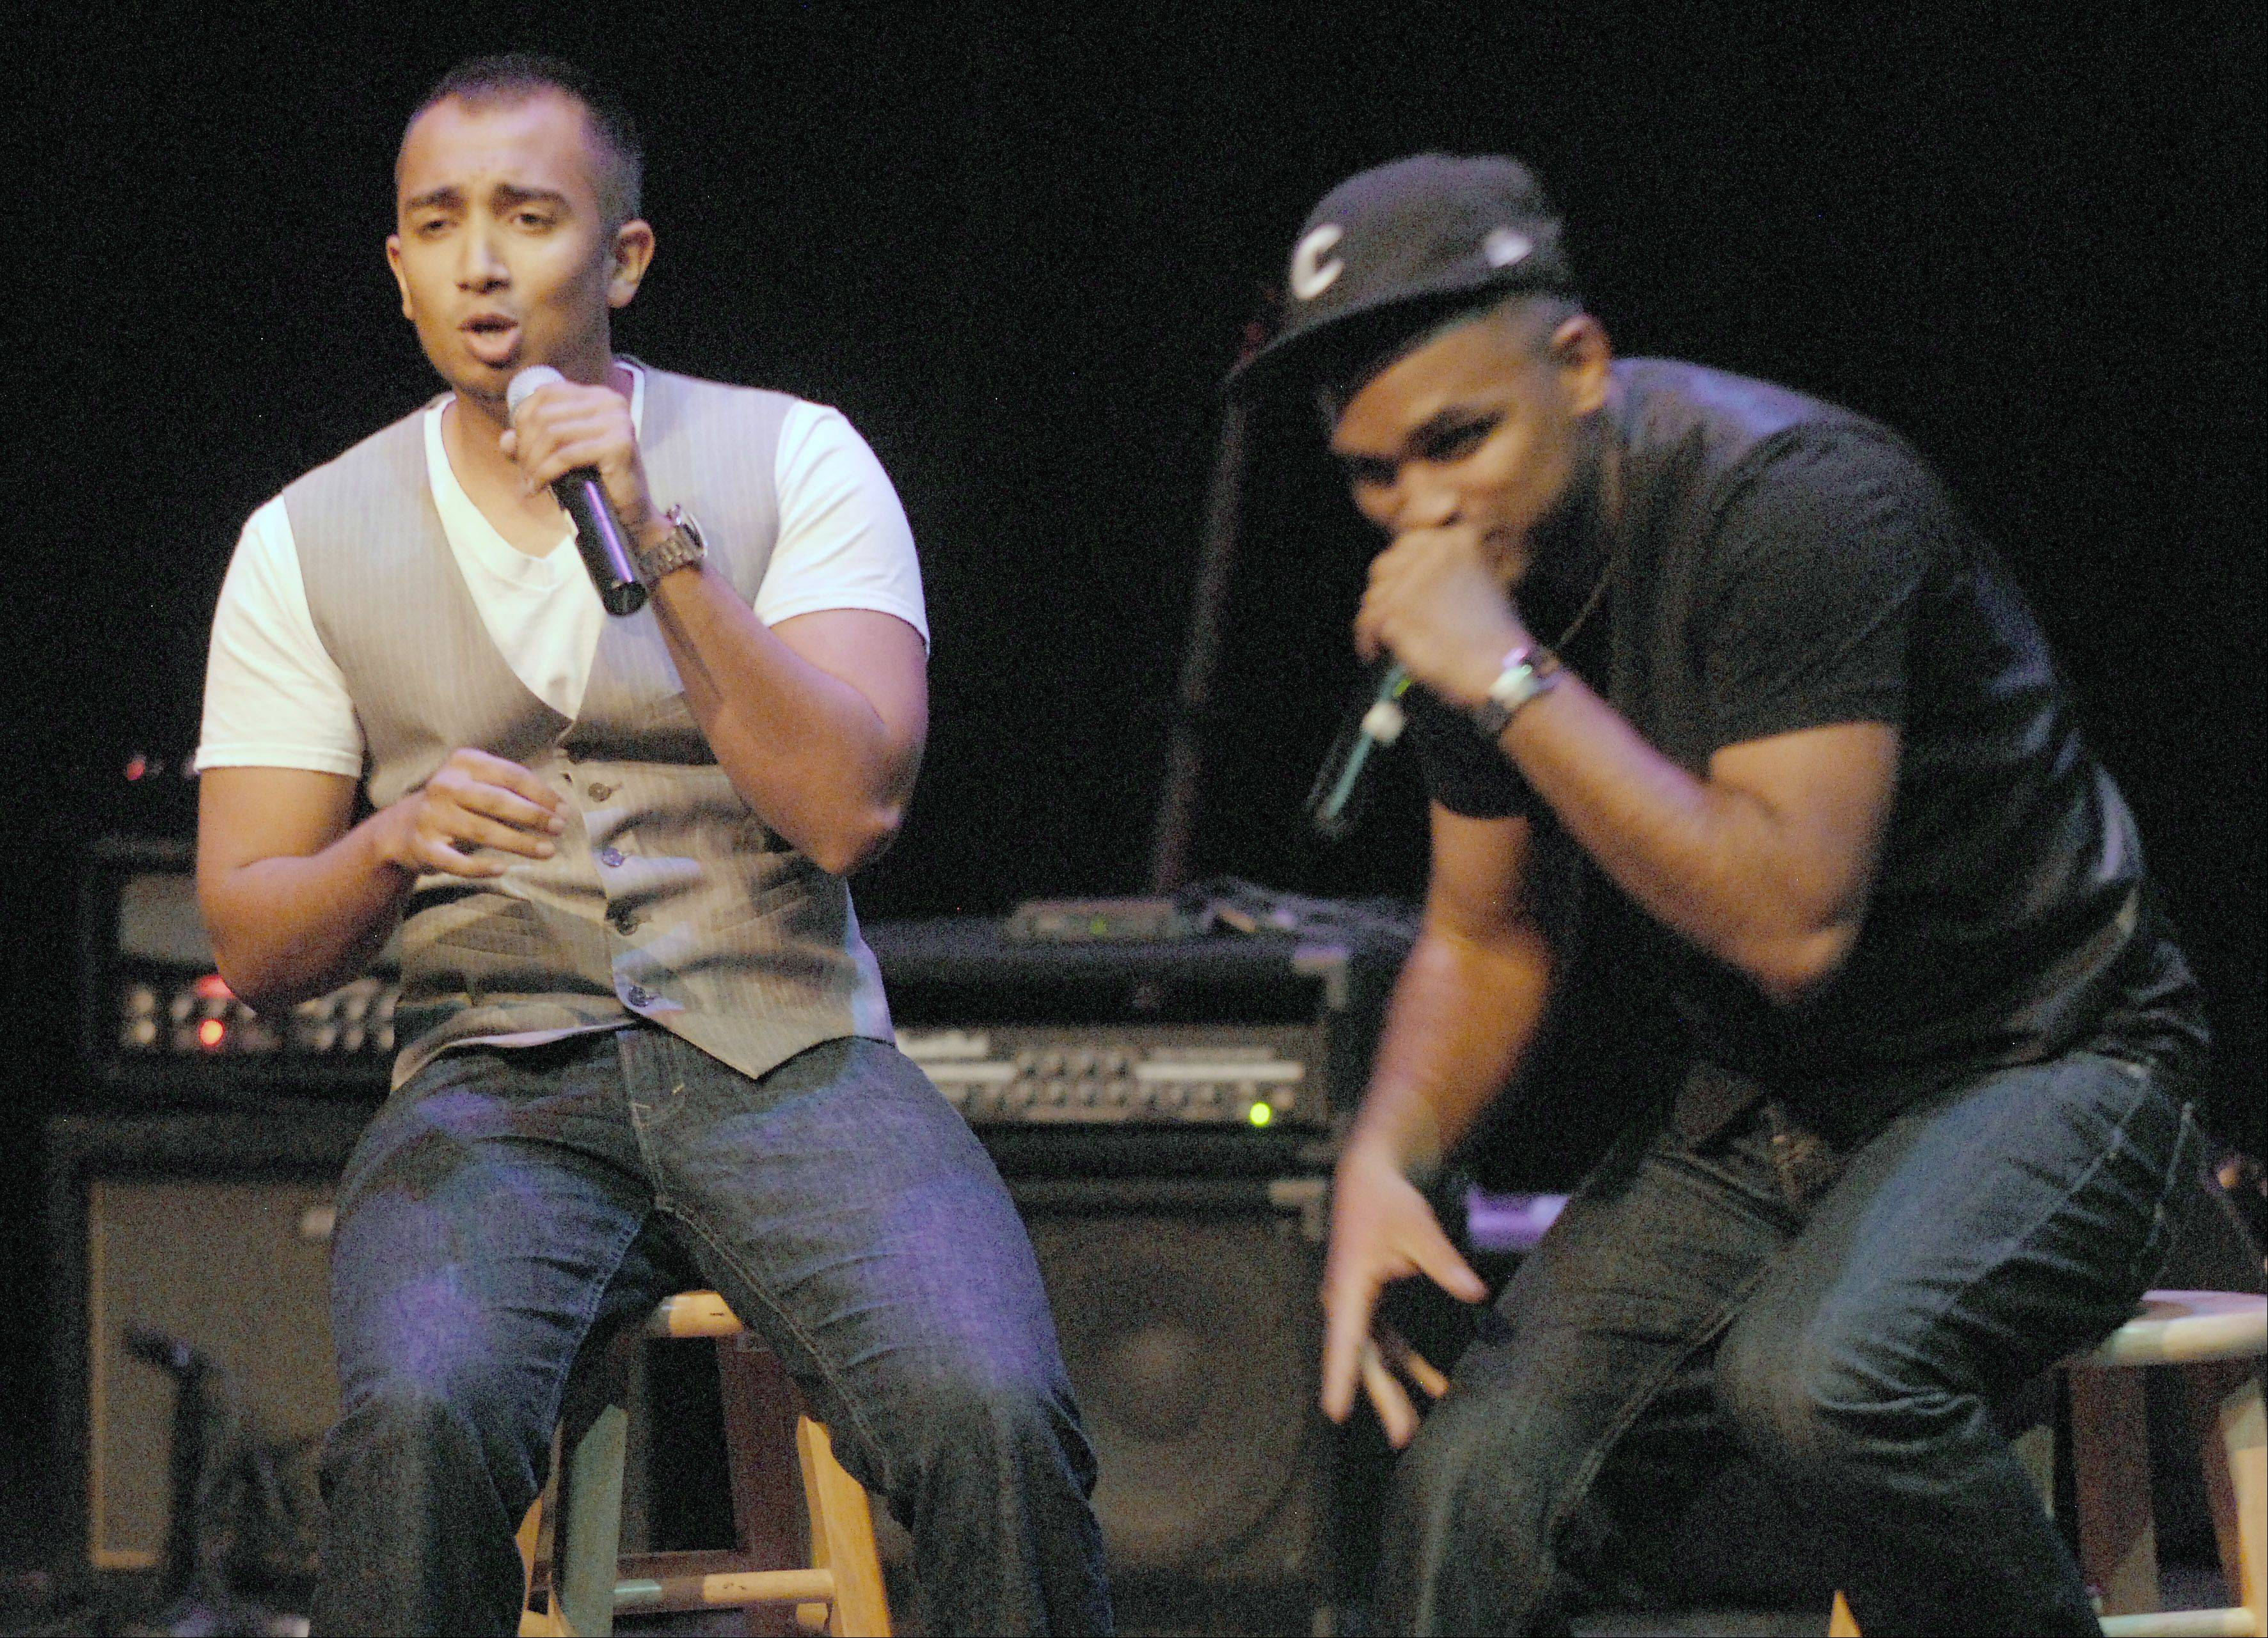 iLLest Vocals featuring Sanu John, 25, of Skokie and Shawn Kurian, 25, of Wheeling, performing as one of the five finalists of Suburban Chicago's Got Talent for the judges and fans at the Metropolis Performing Arts Centre in Arlington Heights.